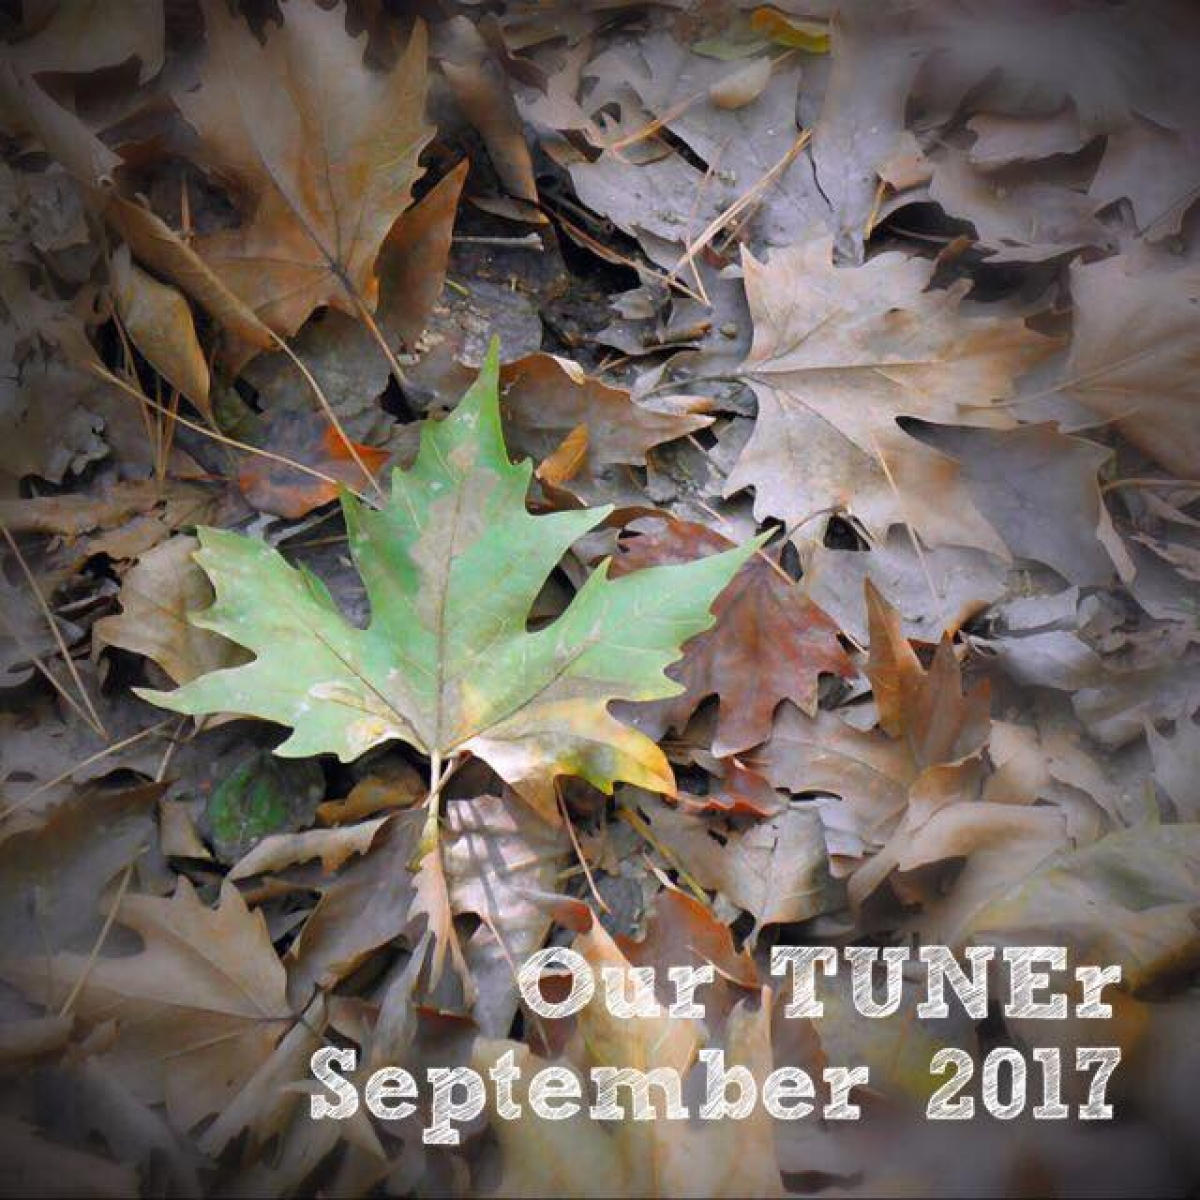 #OurTUNEr - September 2017